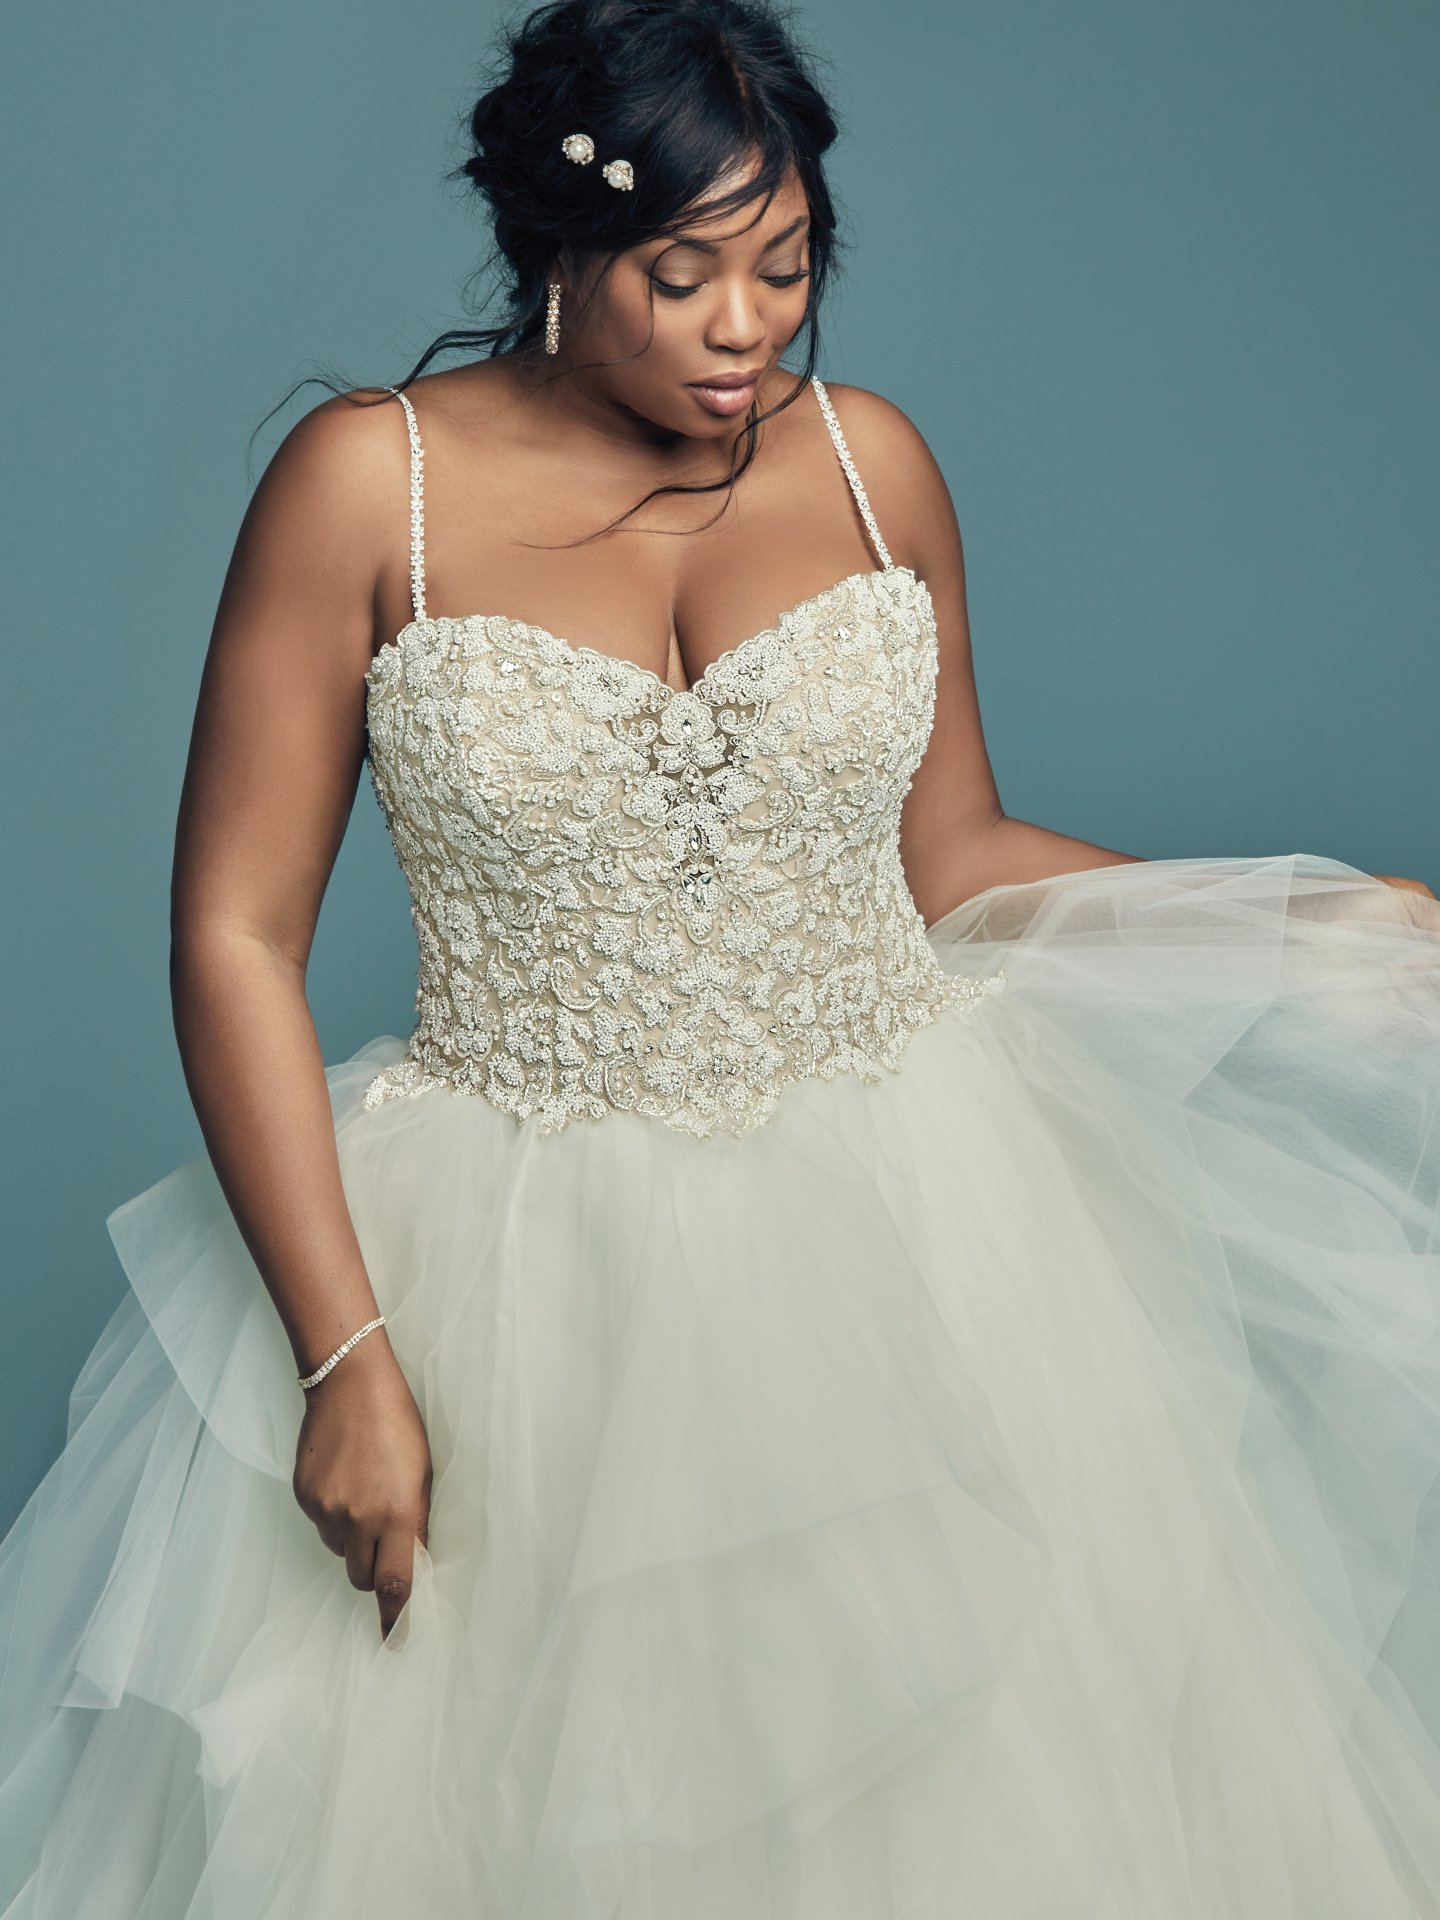 The Most Fitting Wedding Dress Style For Your Body Shape